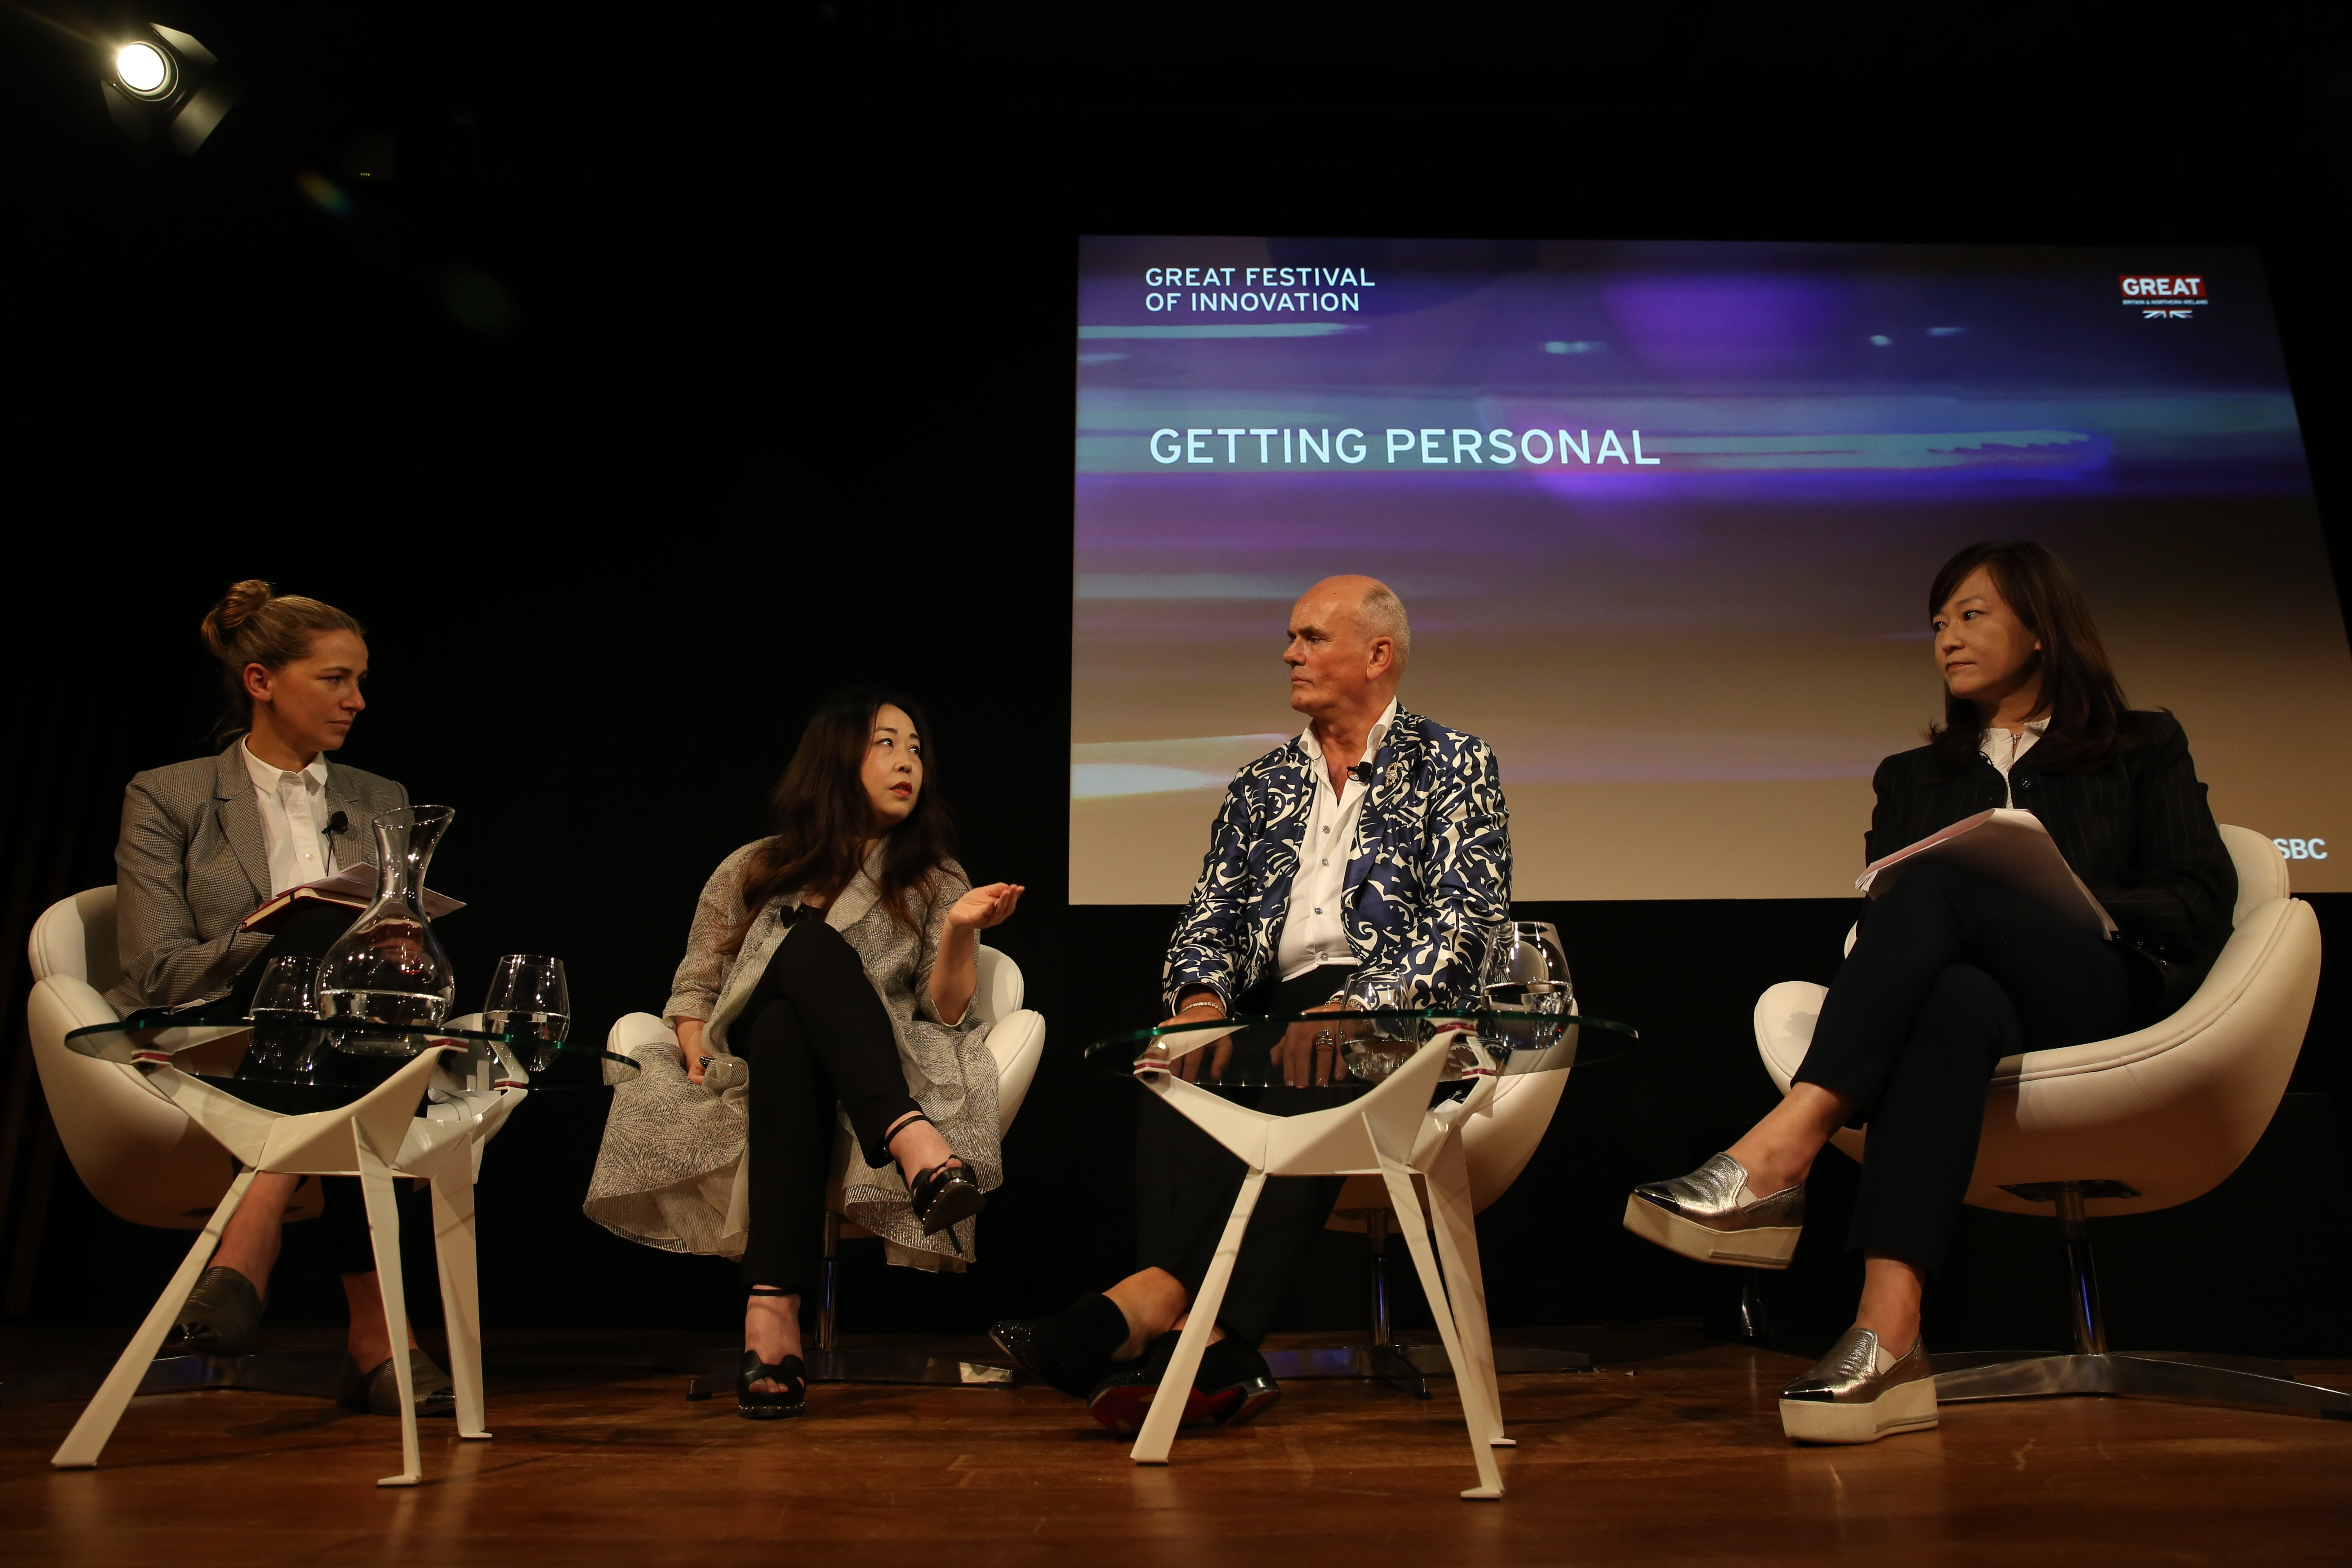 Left to right: Christina Dean, founder of NGO Redress, couturier Grace Chen, perfumer Roja Dove, and Sophia Tsao of Newegg.